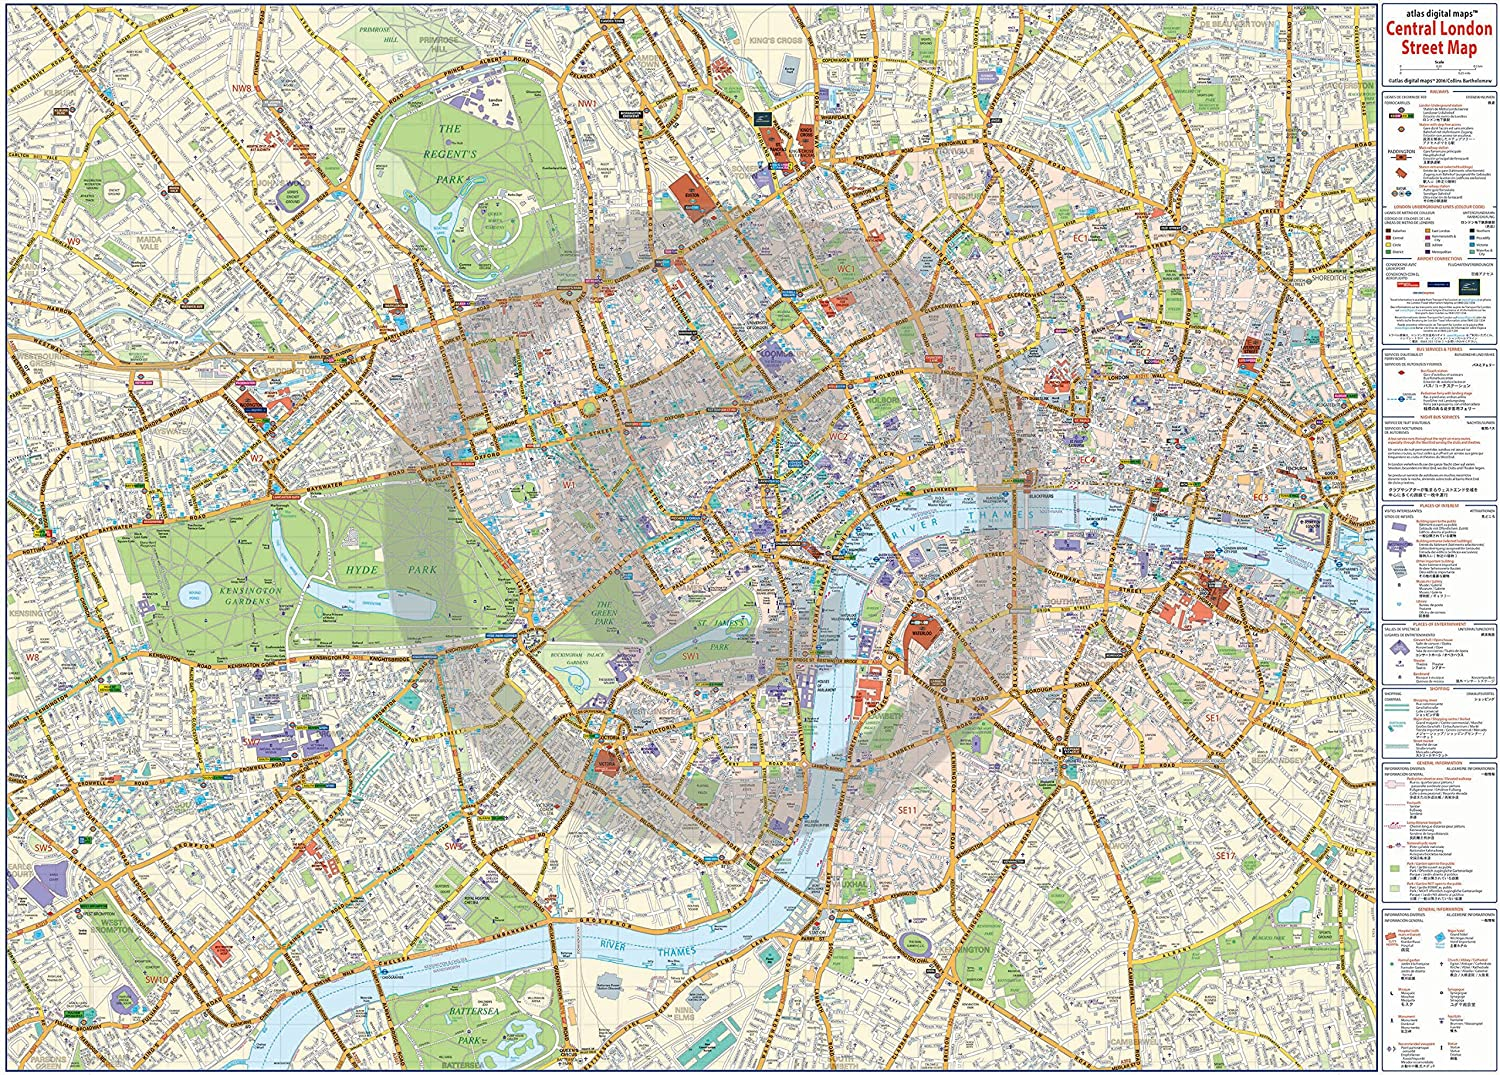 the map of london Huge Laminated Encapsulated Central London Map Poster